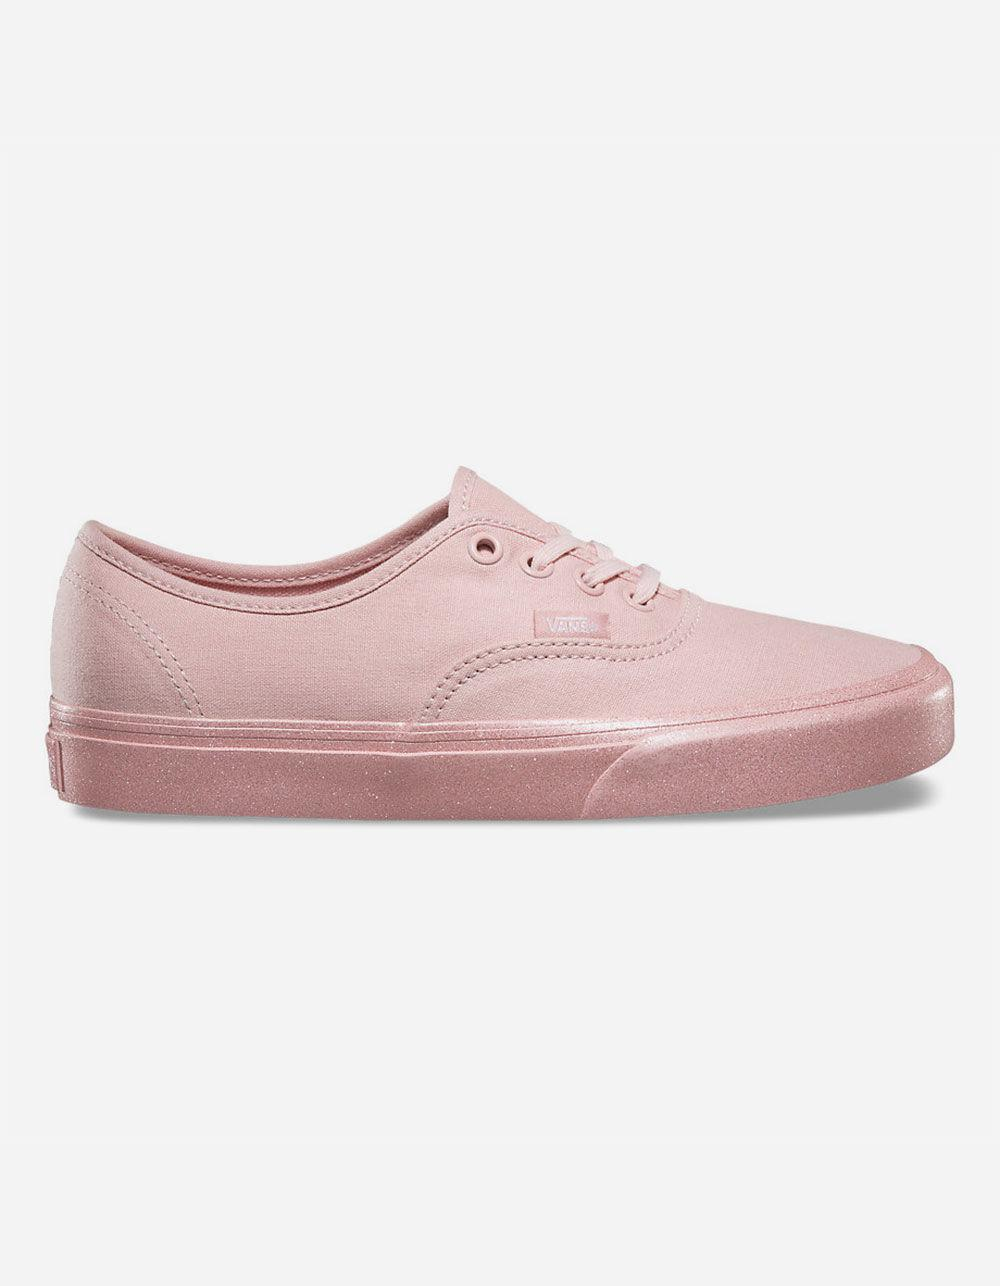 40adbb274ab3 Lyst - Vans Metallic Glitter Authentic Womens Shoes in Pink